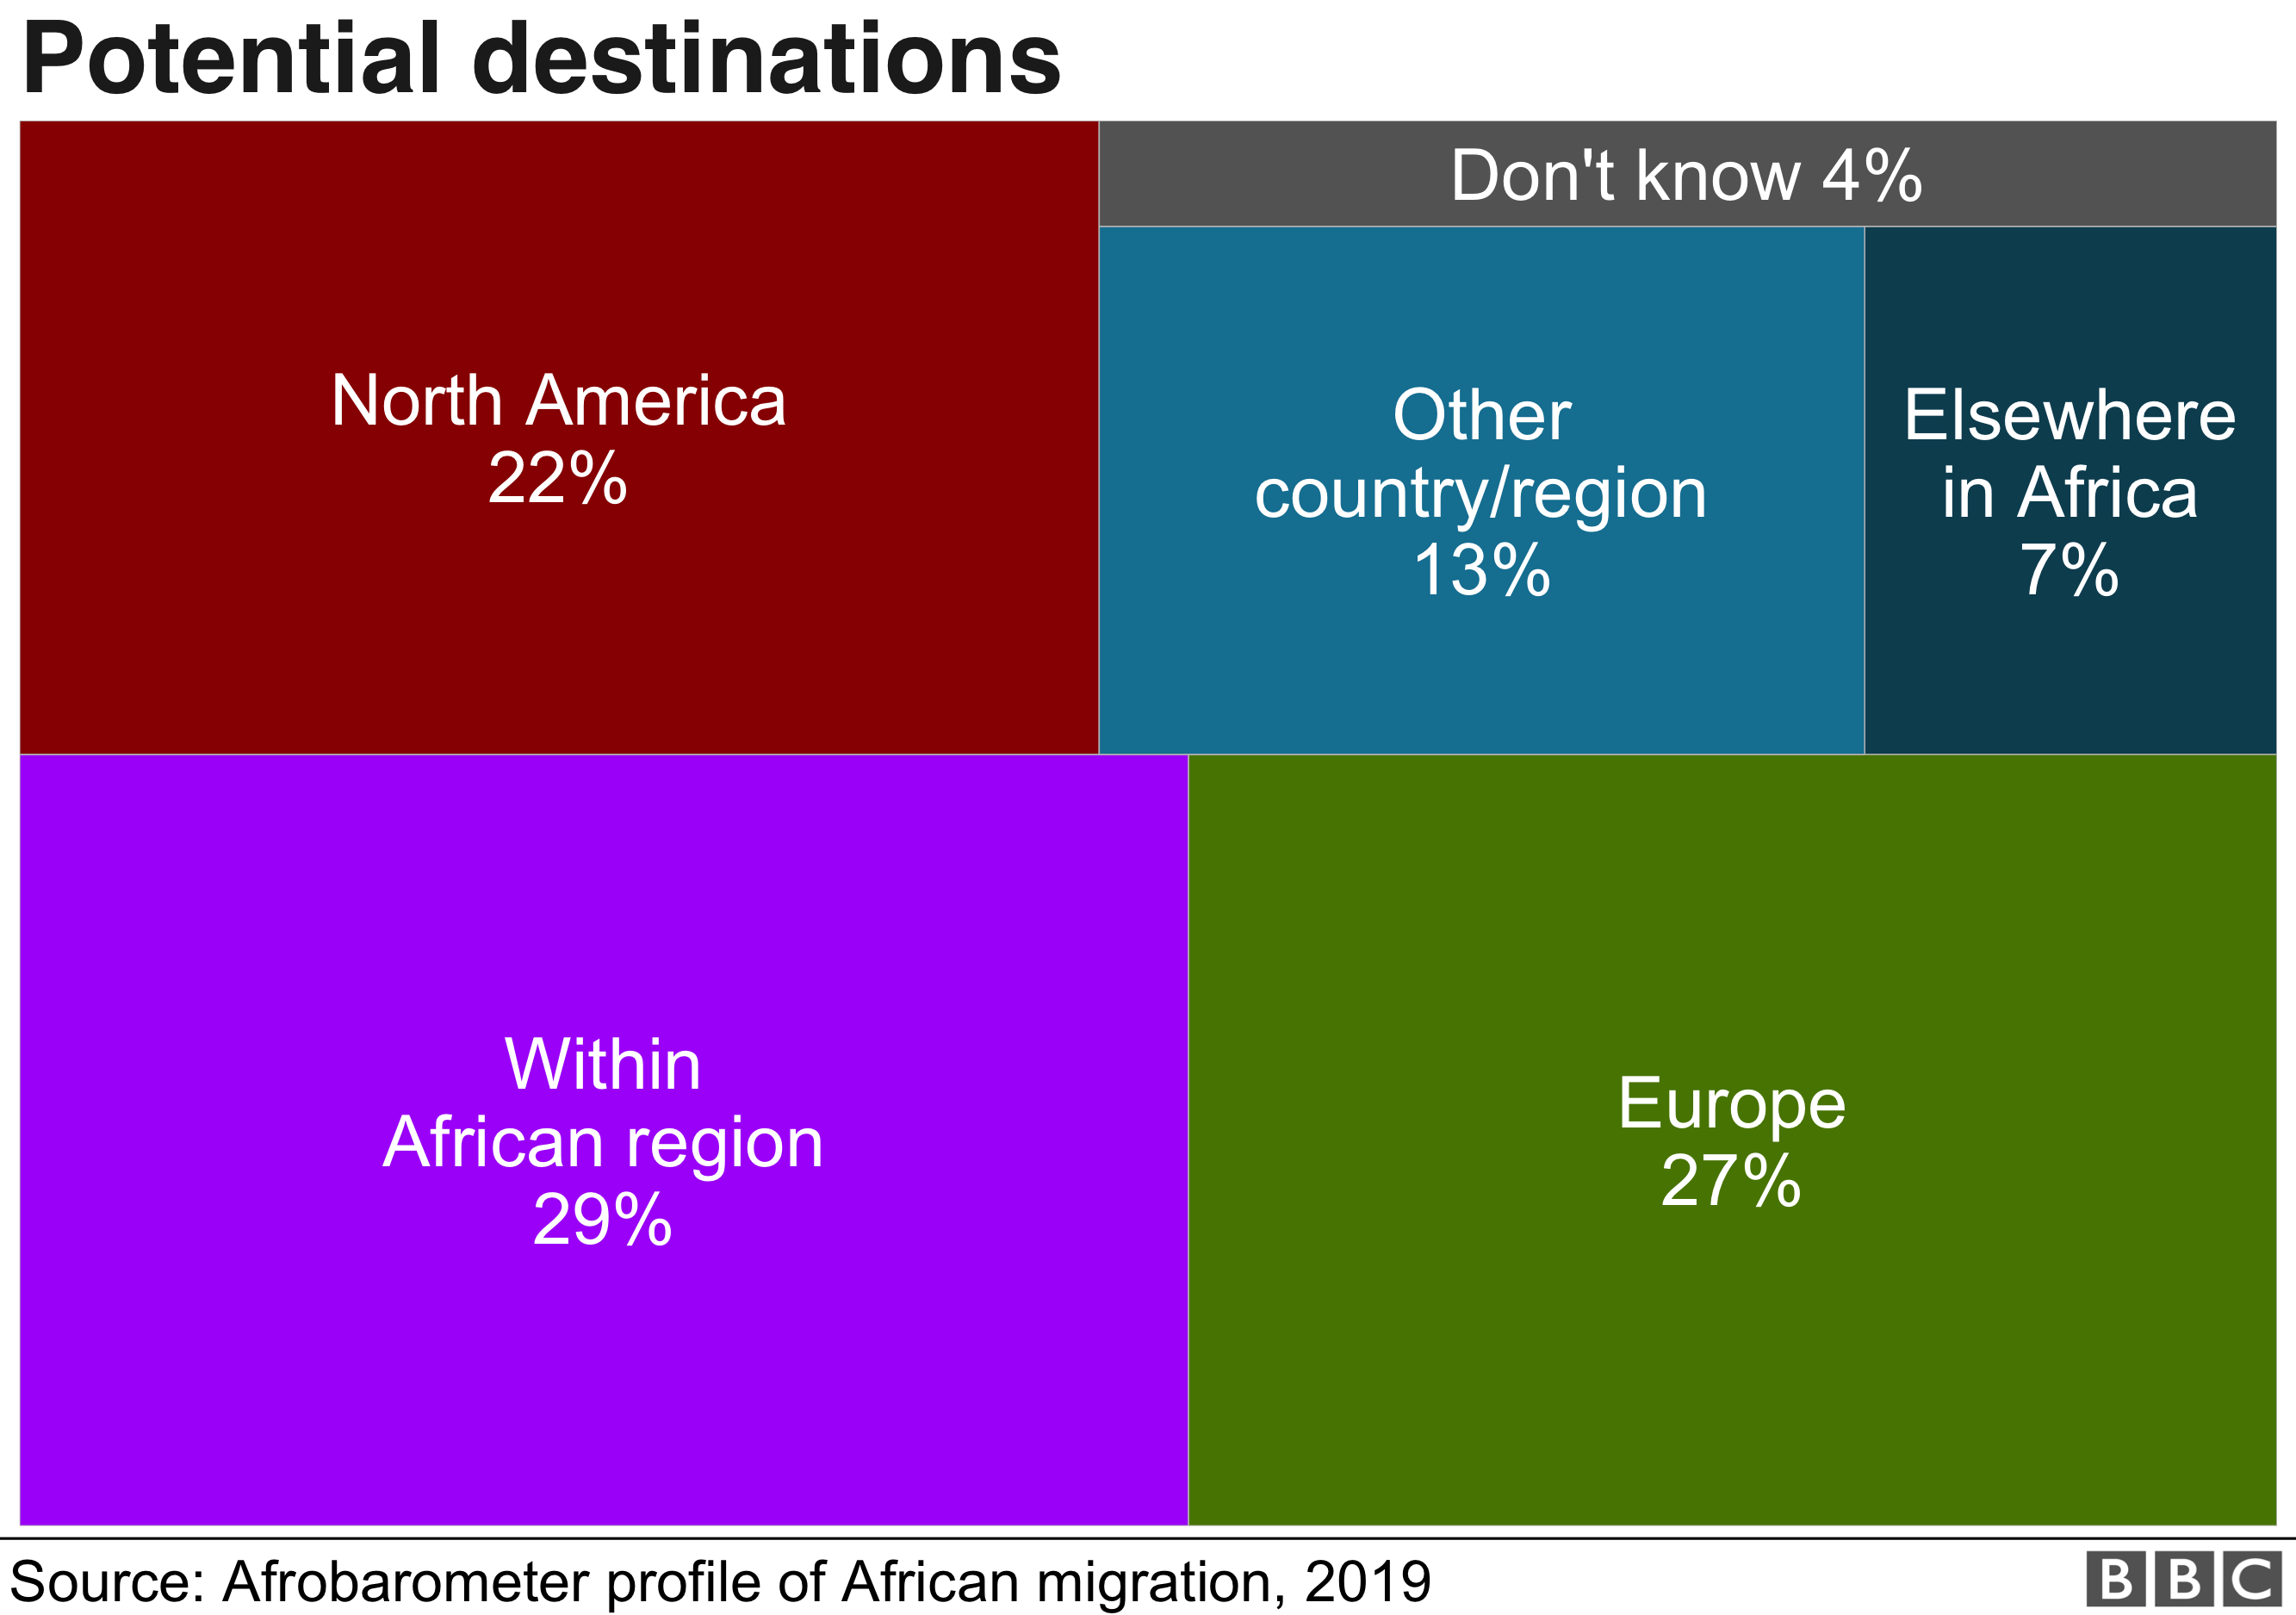 A chart indicating where respondents say they are considering emigrating to.